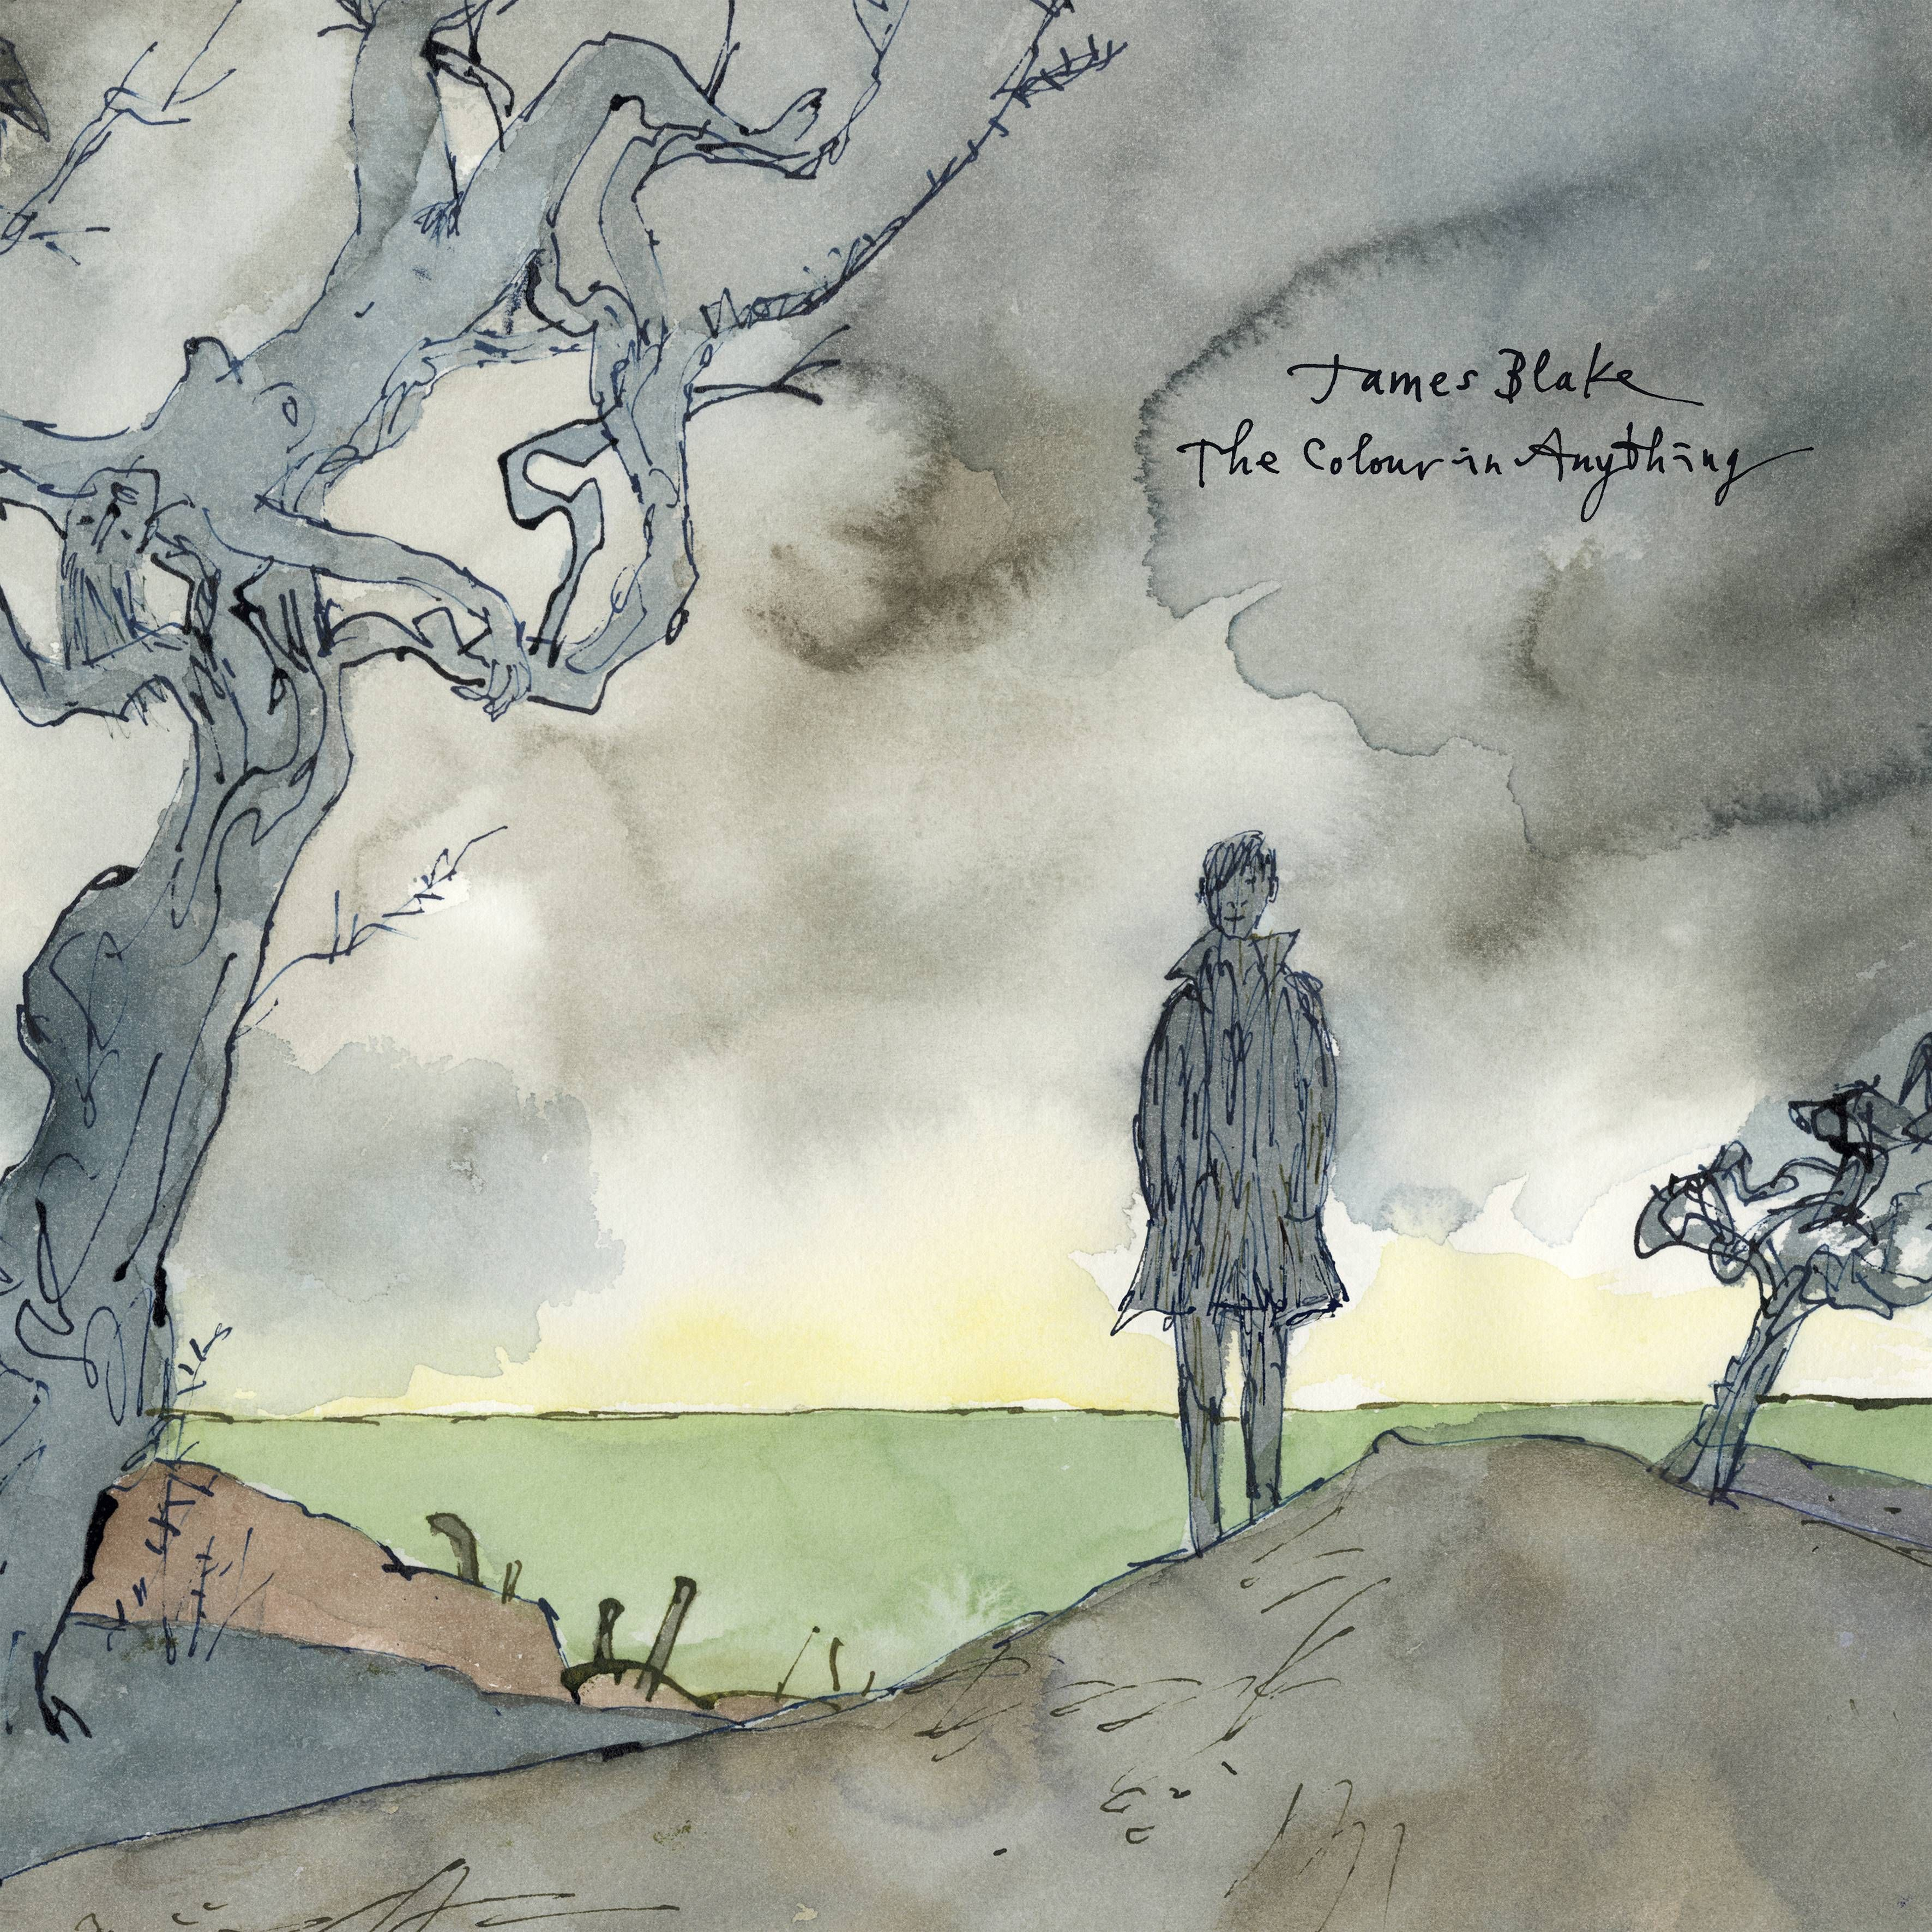 James Blake - The Colour In Anything album cover